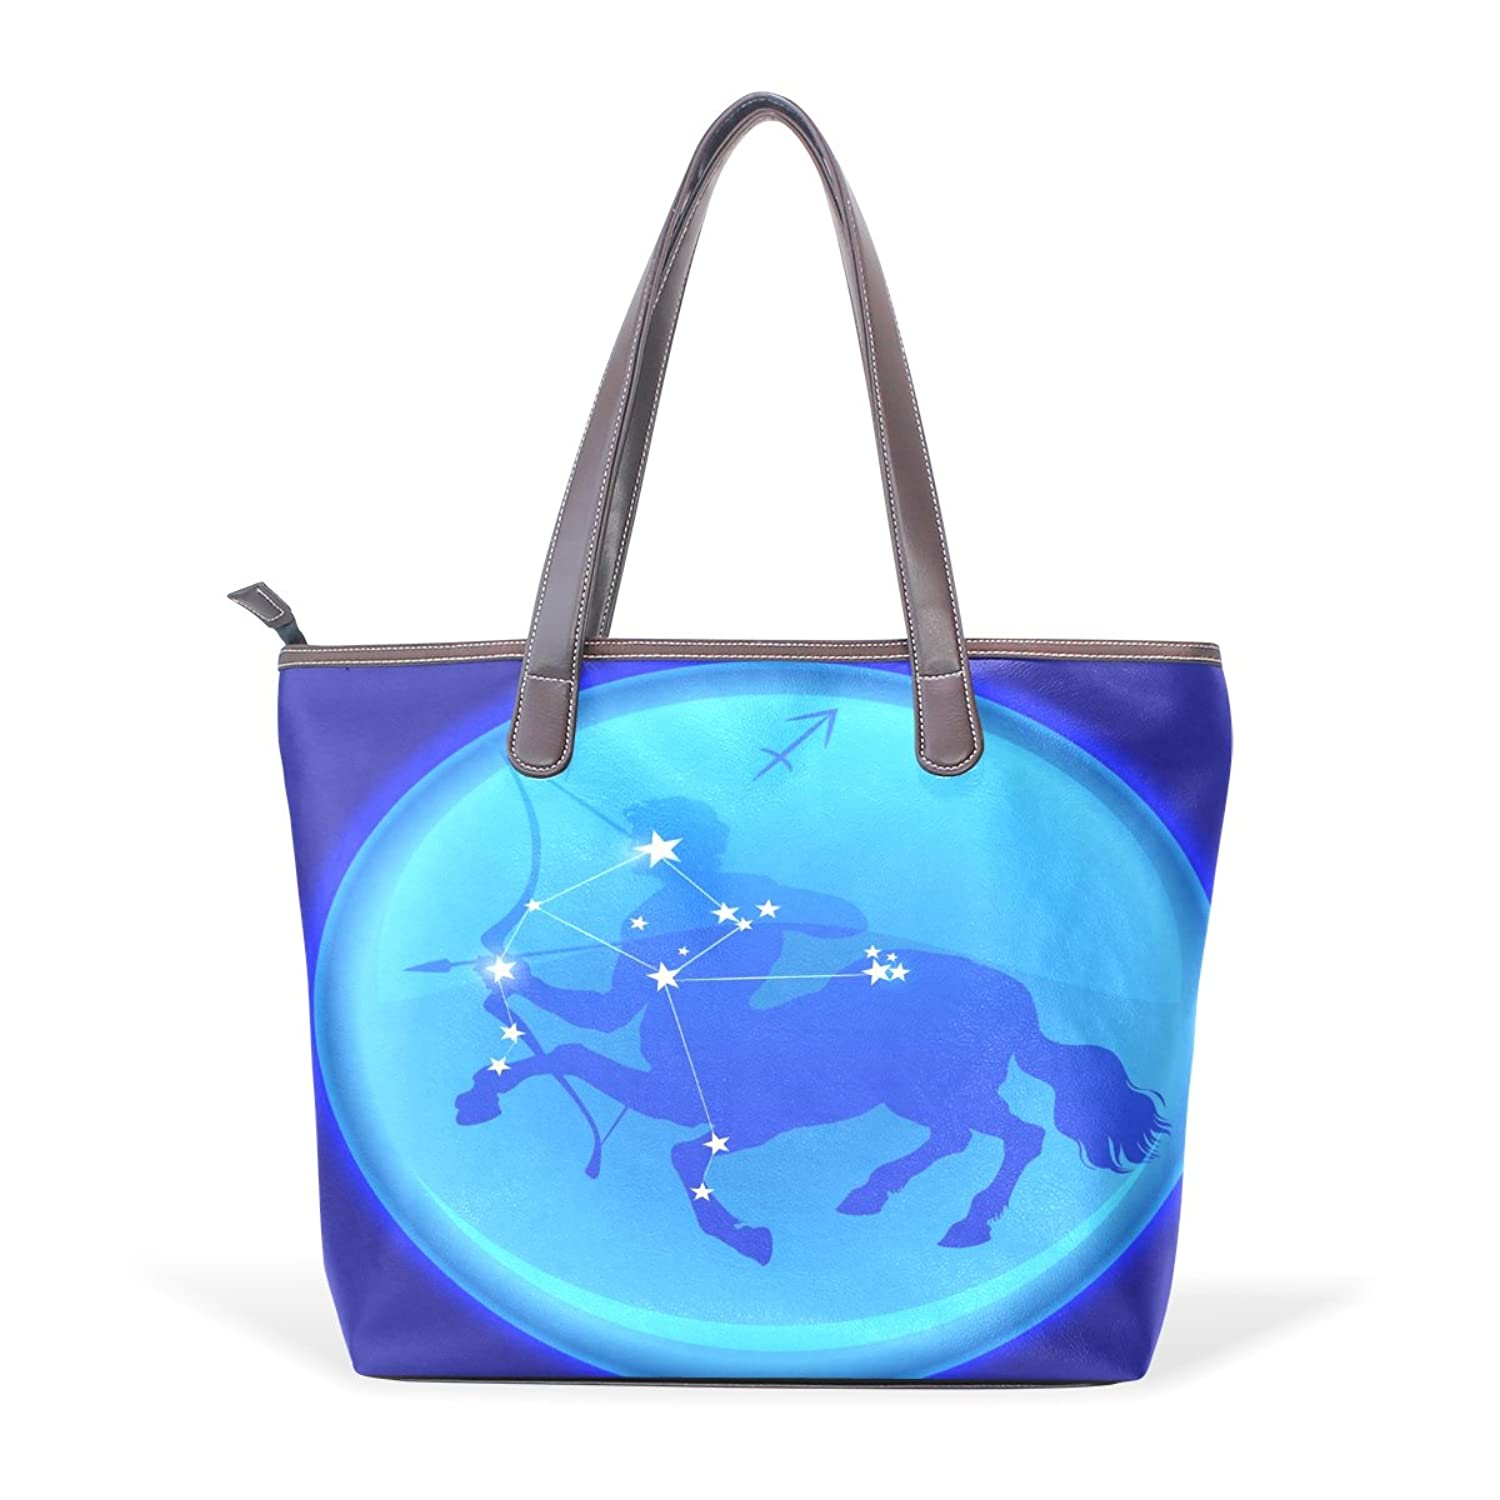 Womens Leather Tote Bag,Fantasy 12 Constellation Sagittarius,Large Handbag